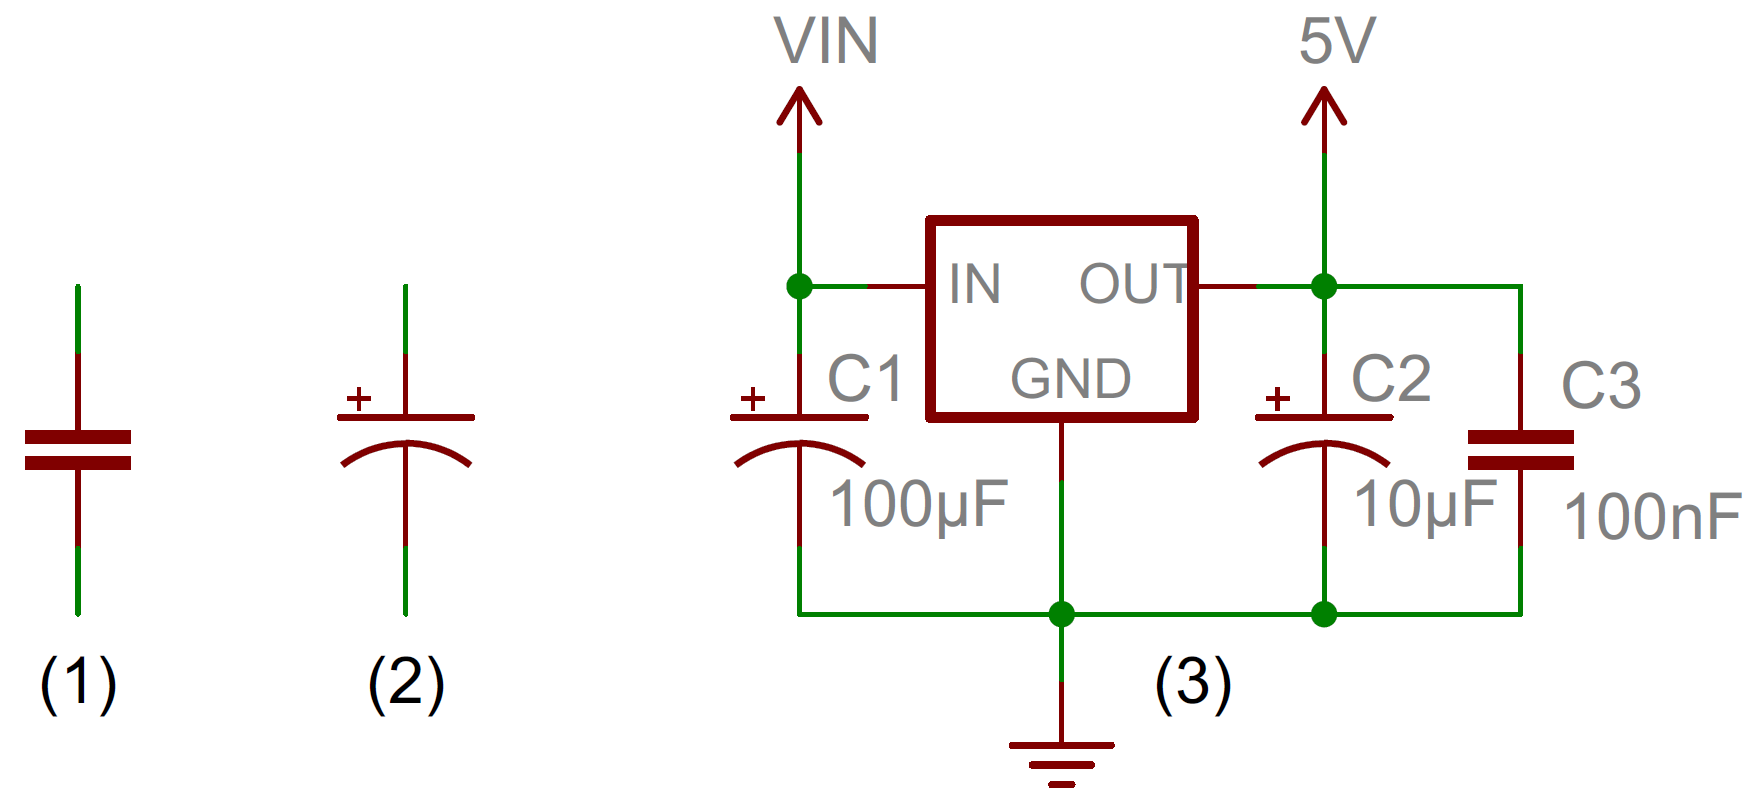 Capacitors Rectifier Regulator Schematic Capacitor Circuit Symbols